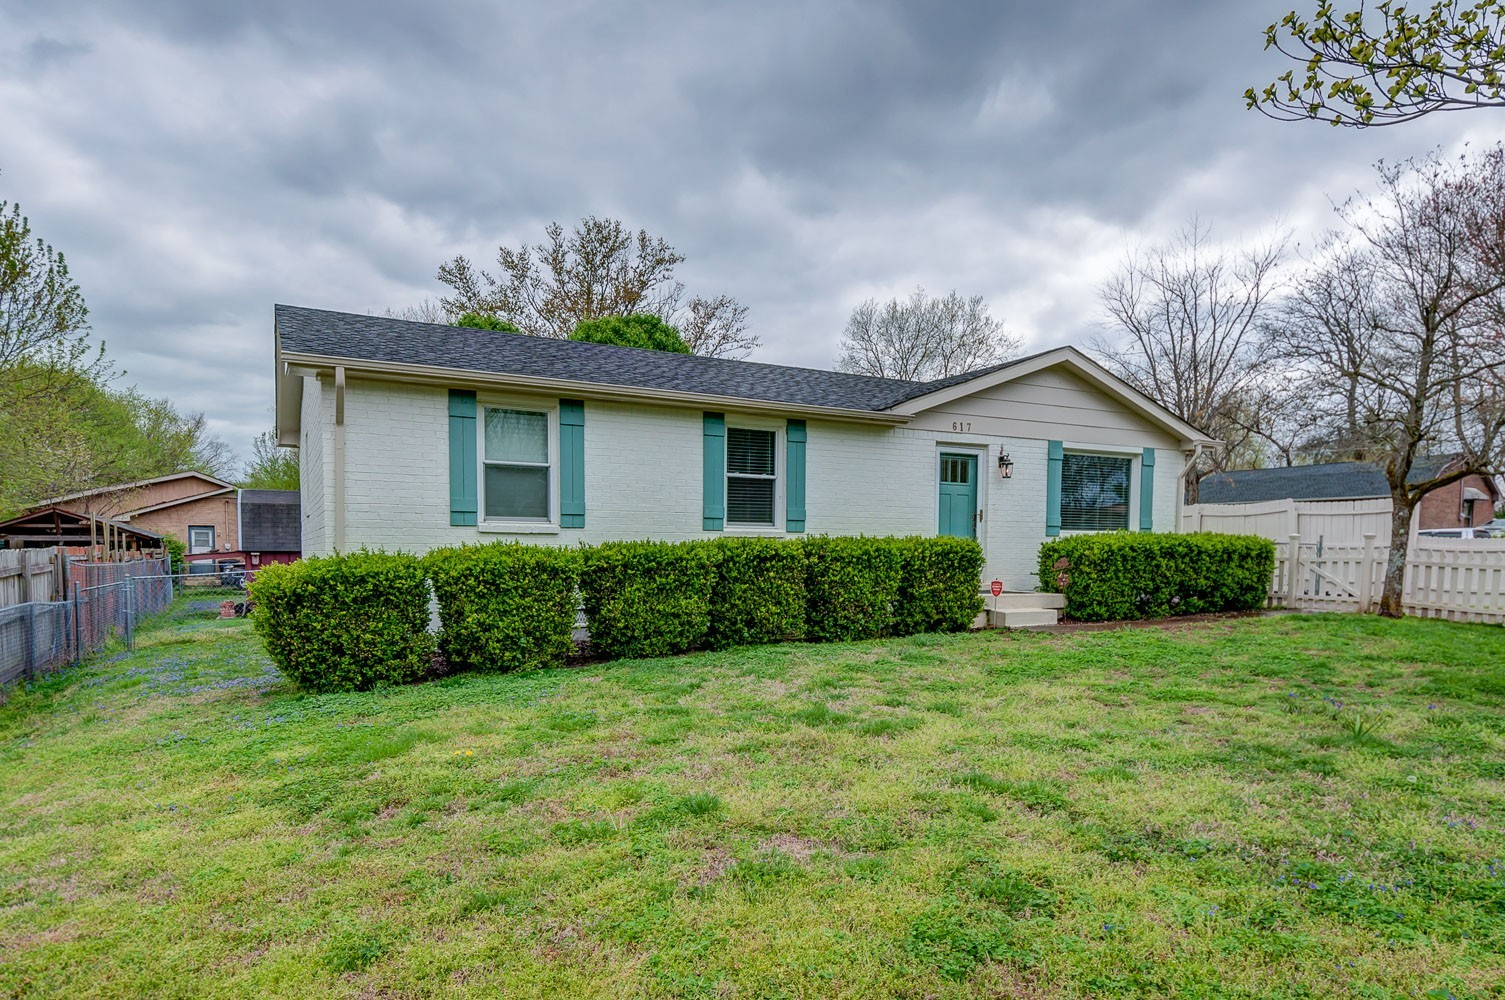 Back to active as Buyers home didn't sell! Adorable gut renovated 3 beds/1 bath cottage, farmhouse finishes, HW floors/tile in wet areas, fenced back yard, nice corner lot, updated electrical and plumbing, 3 year old HVAC! A MUST SEE and easy to show!